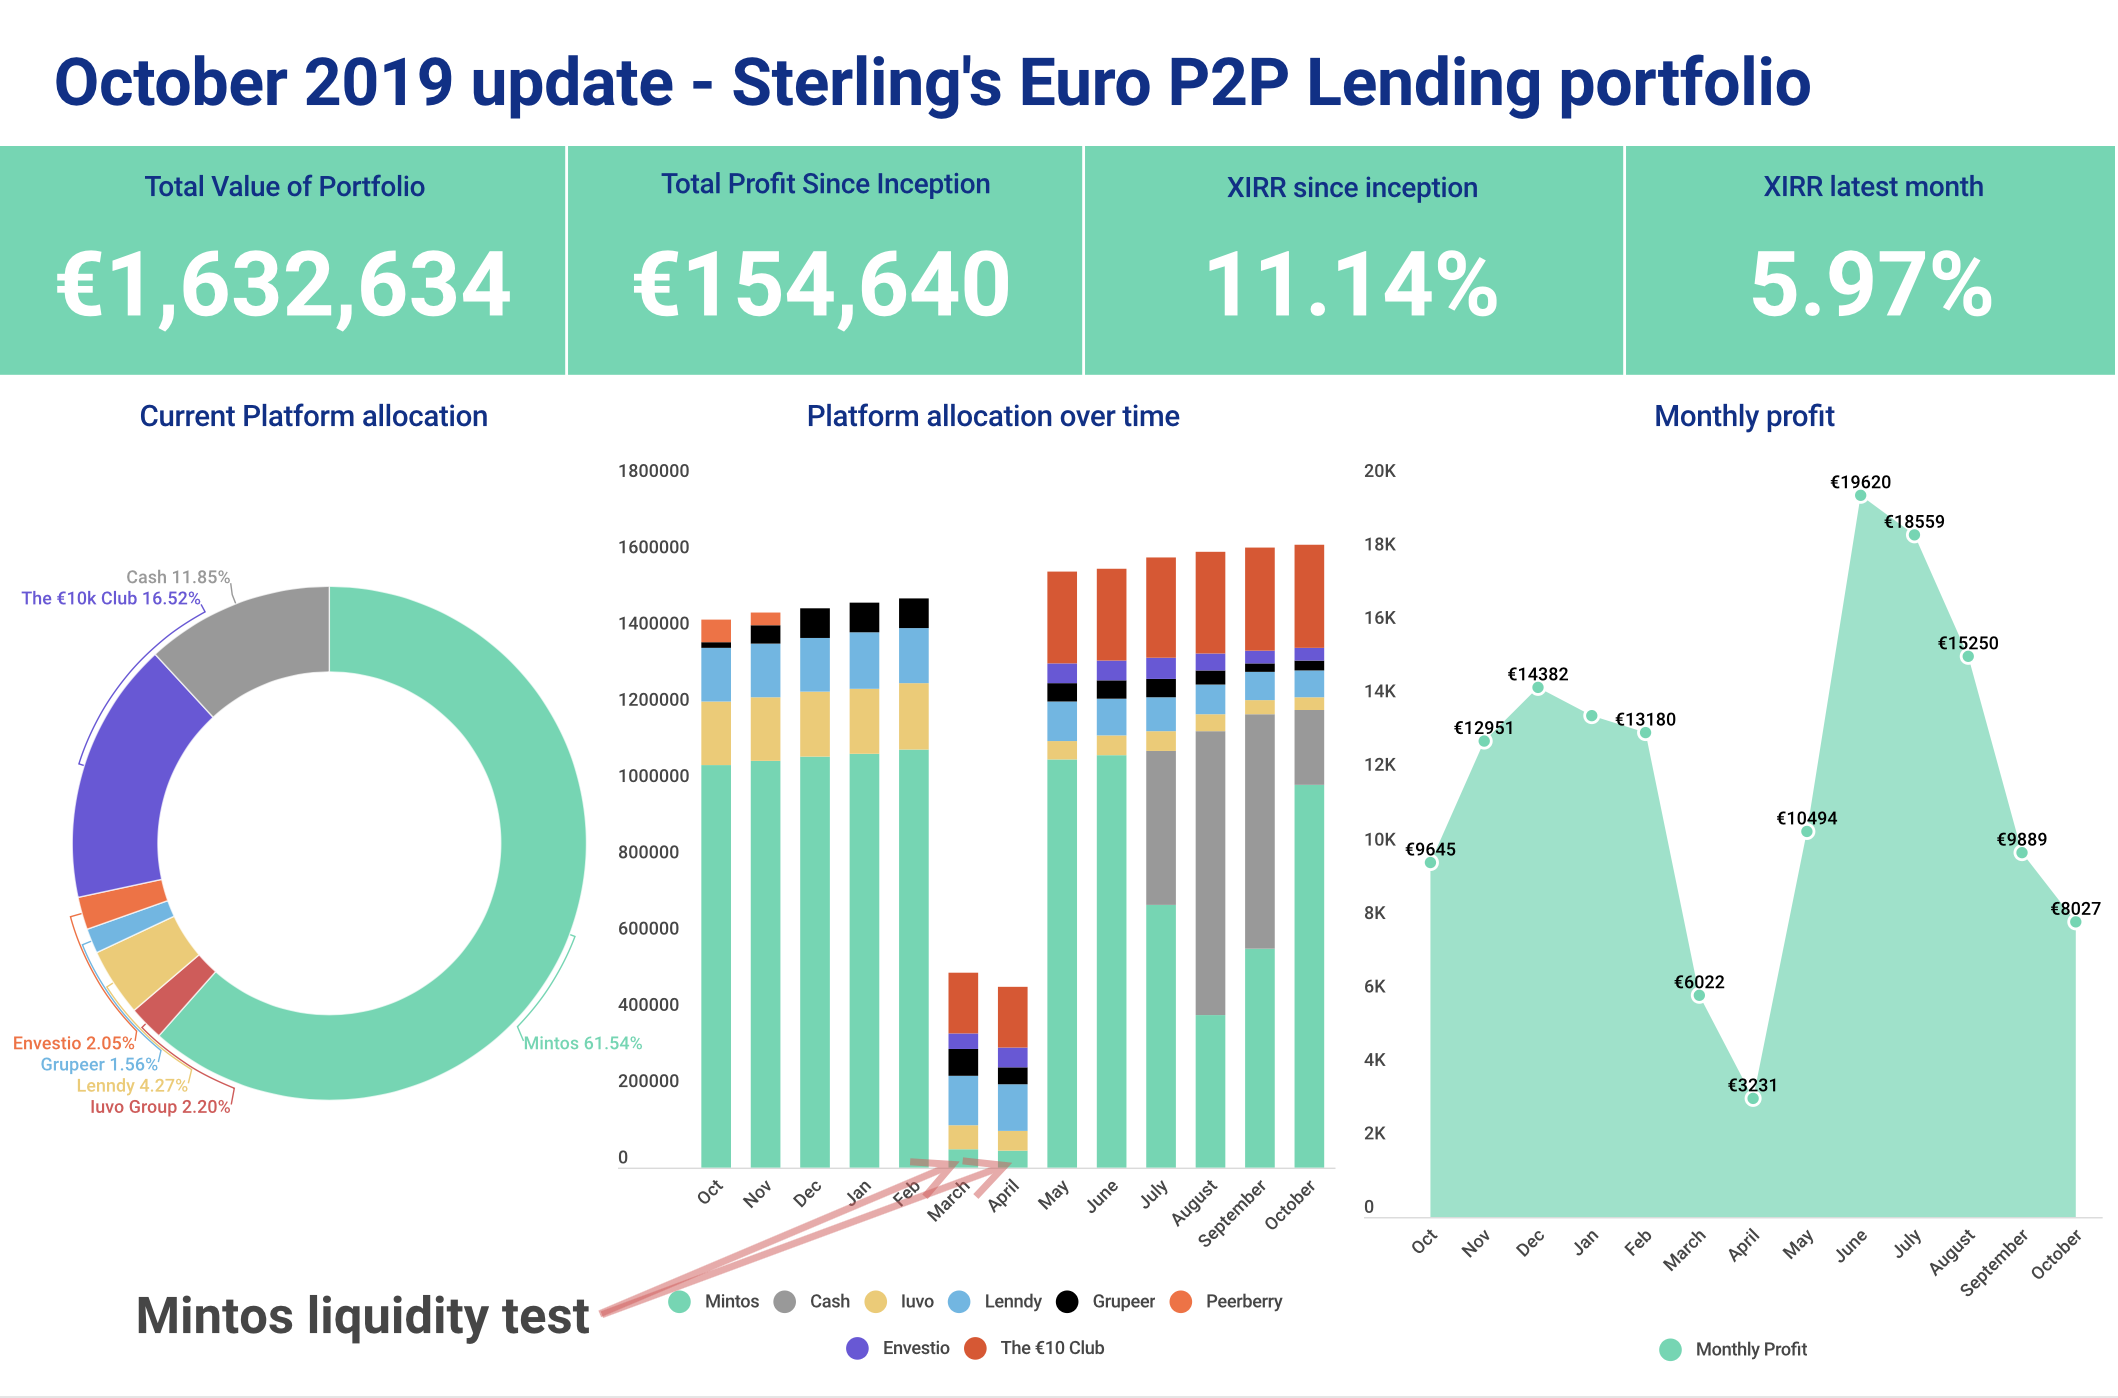 Investment overview for Sterlings portfolio showing returns as graphs